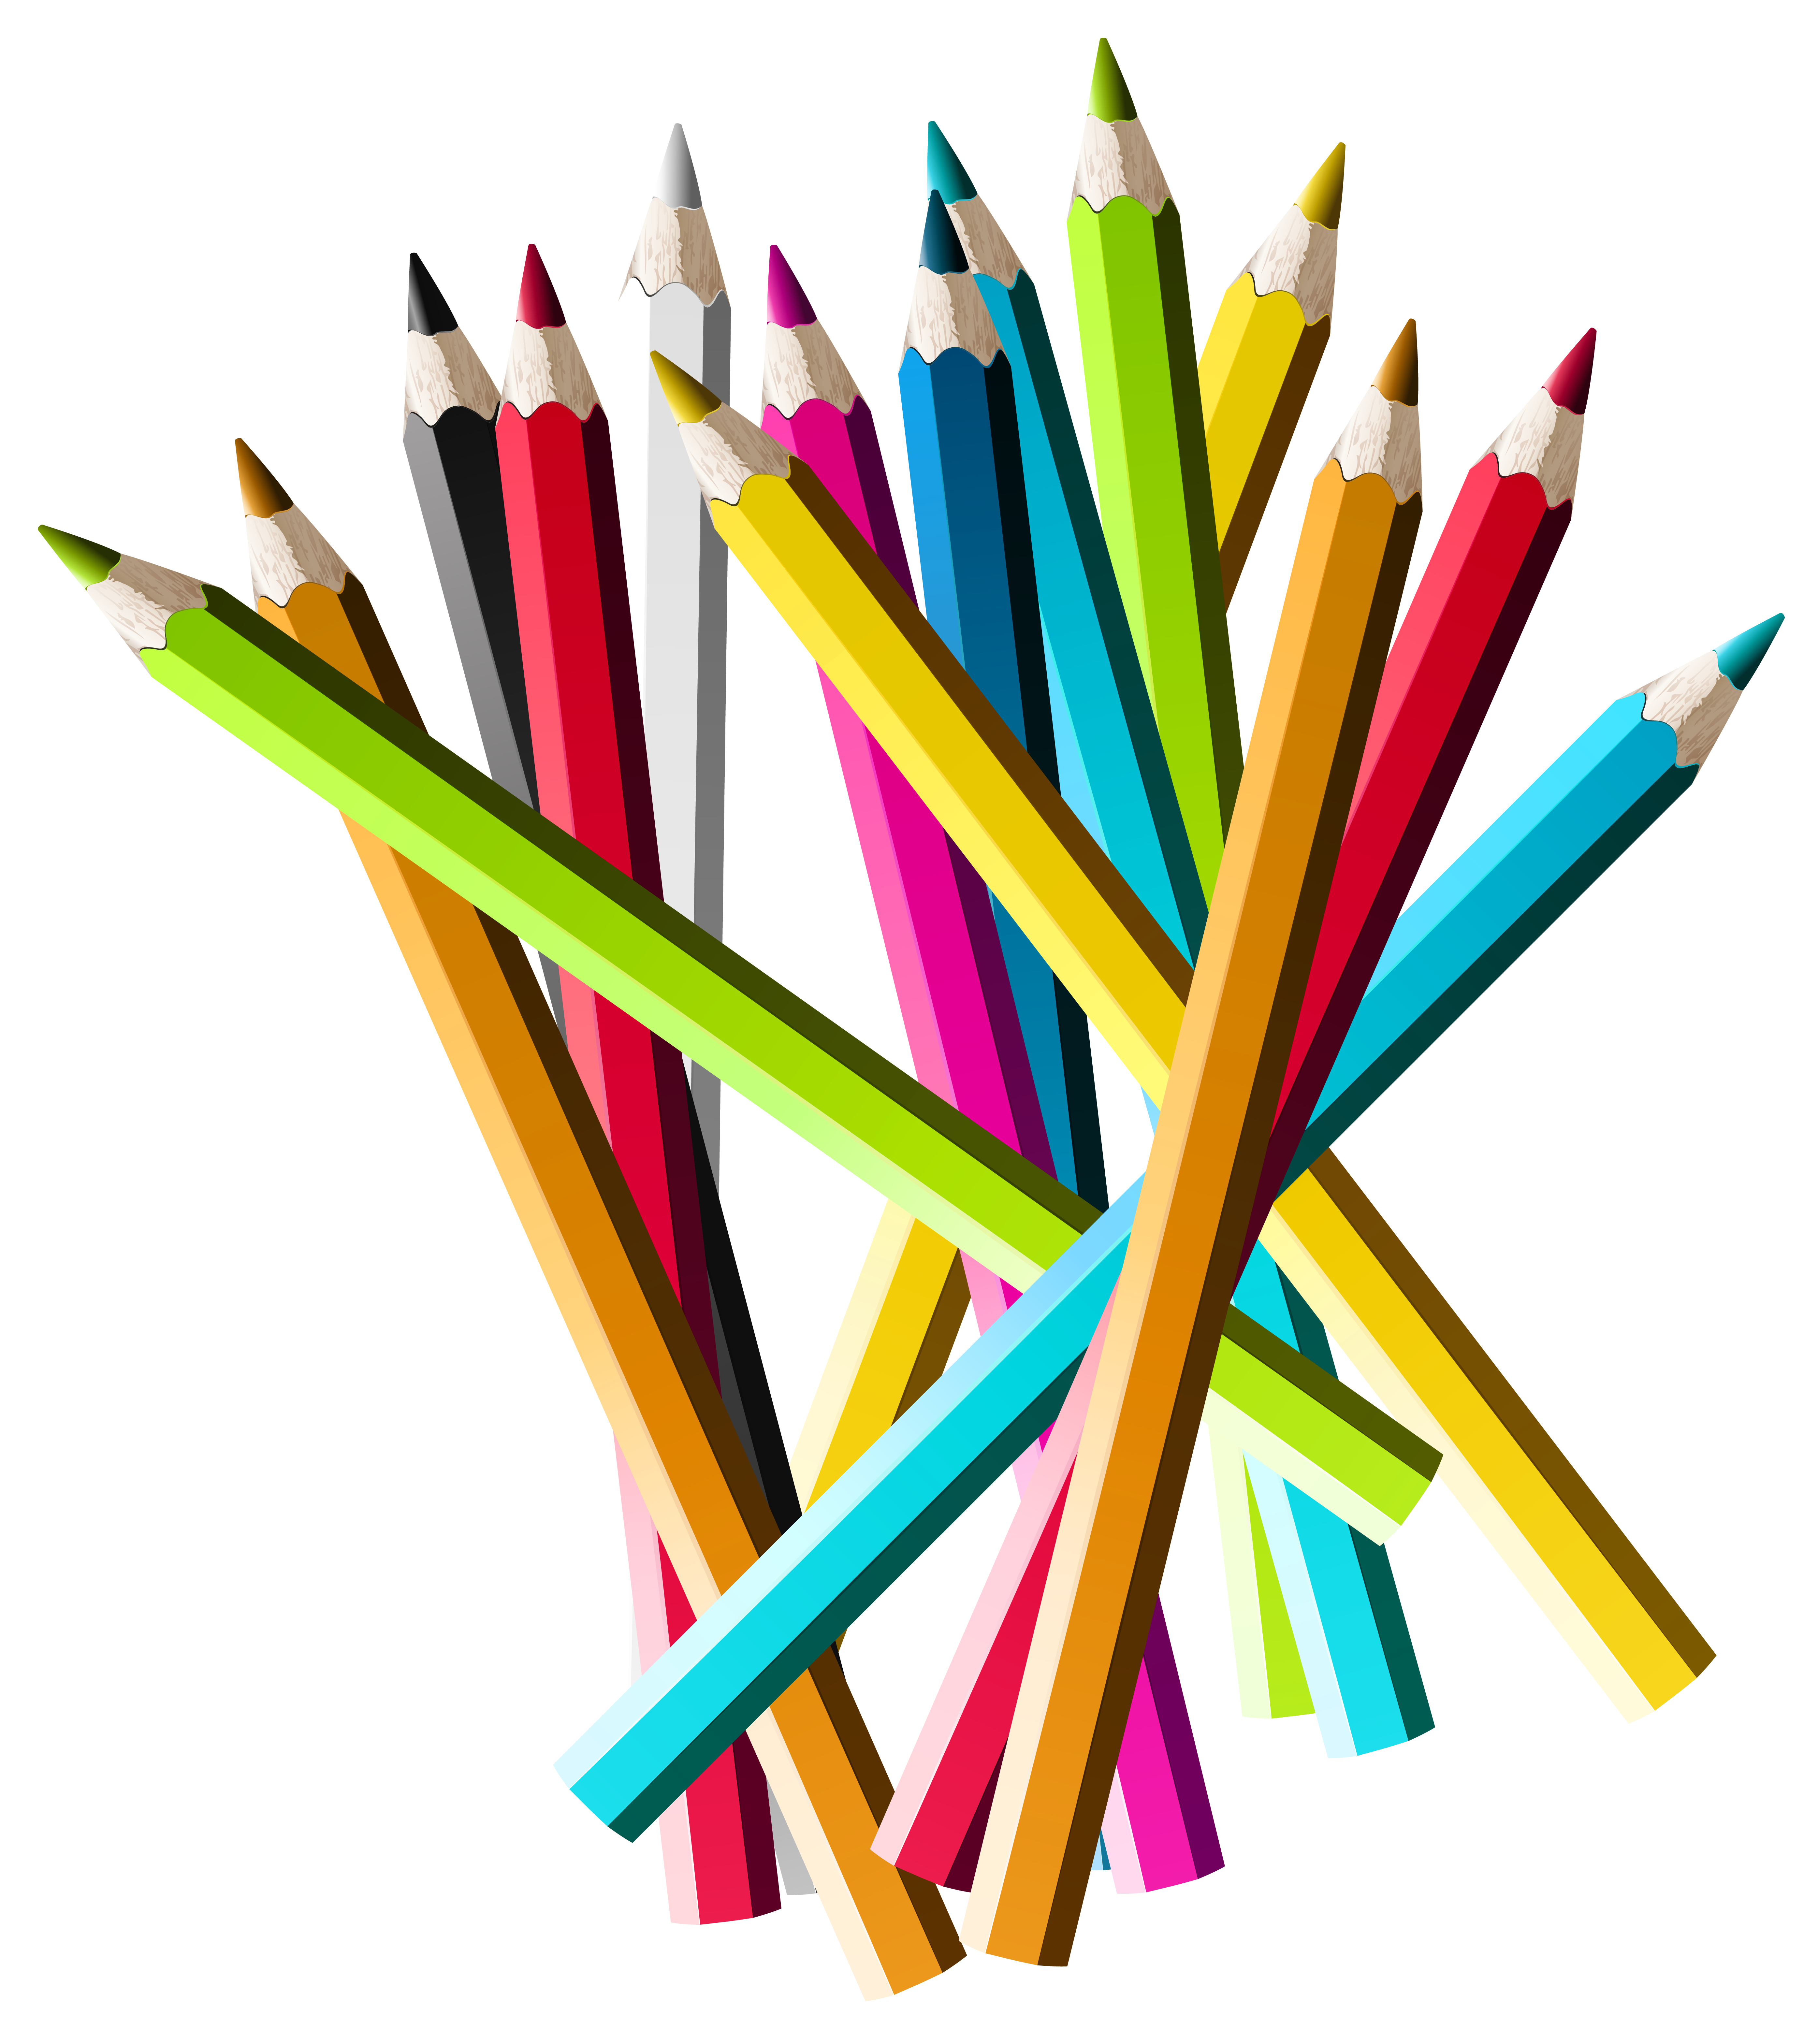 Youtube clipart colorful. Pencils png picture gallery